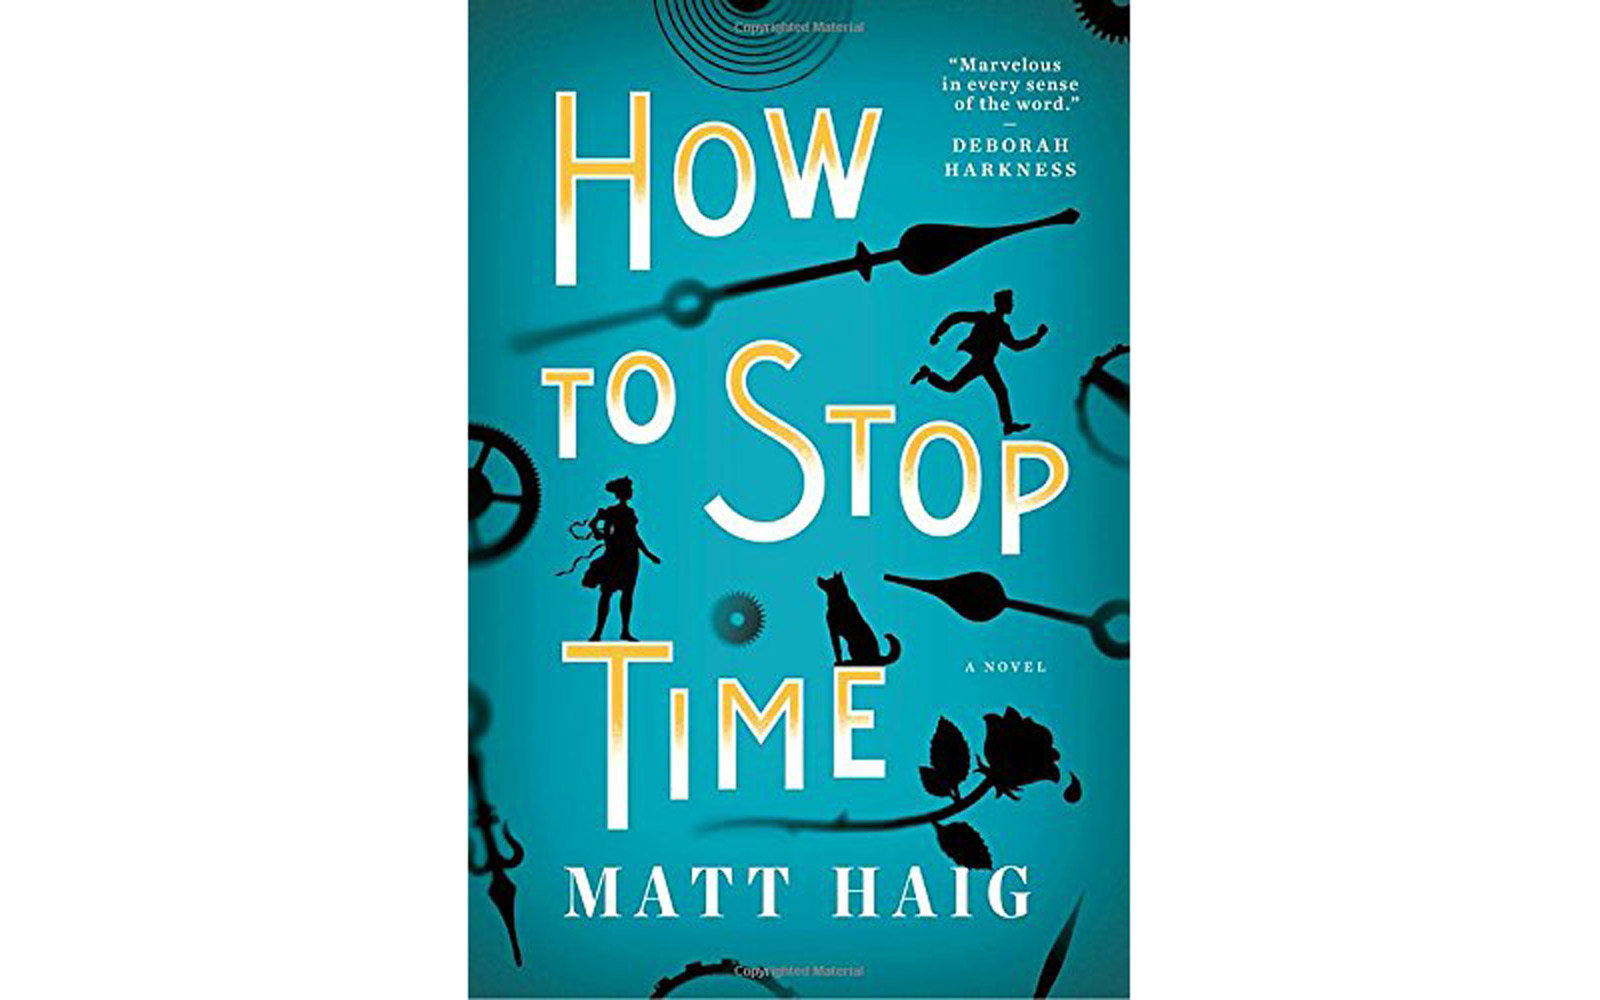 'How to Stop Time' by Matt Haig